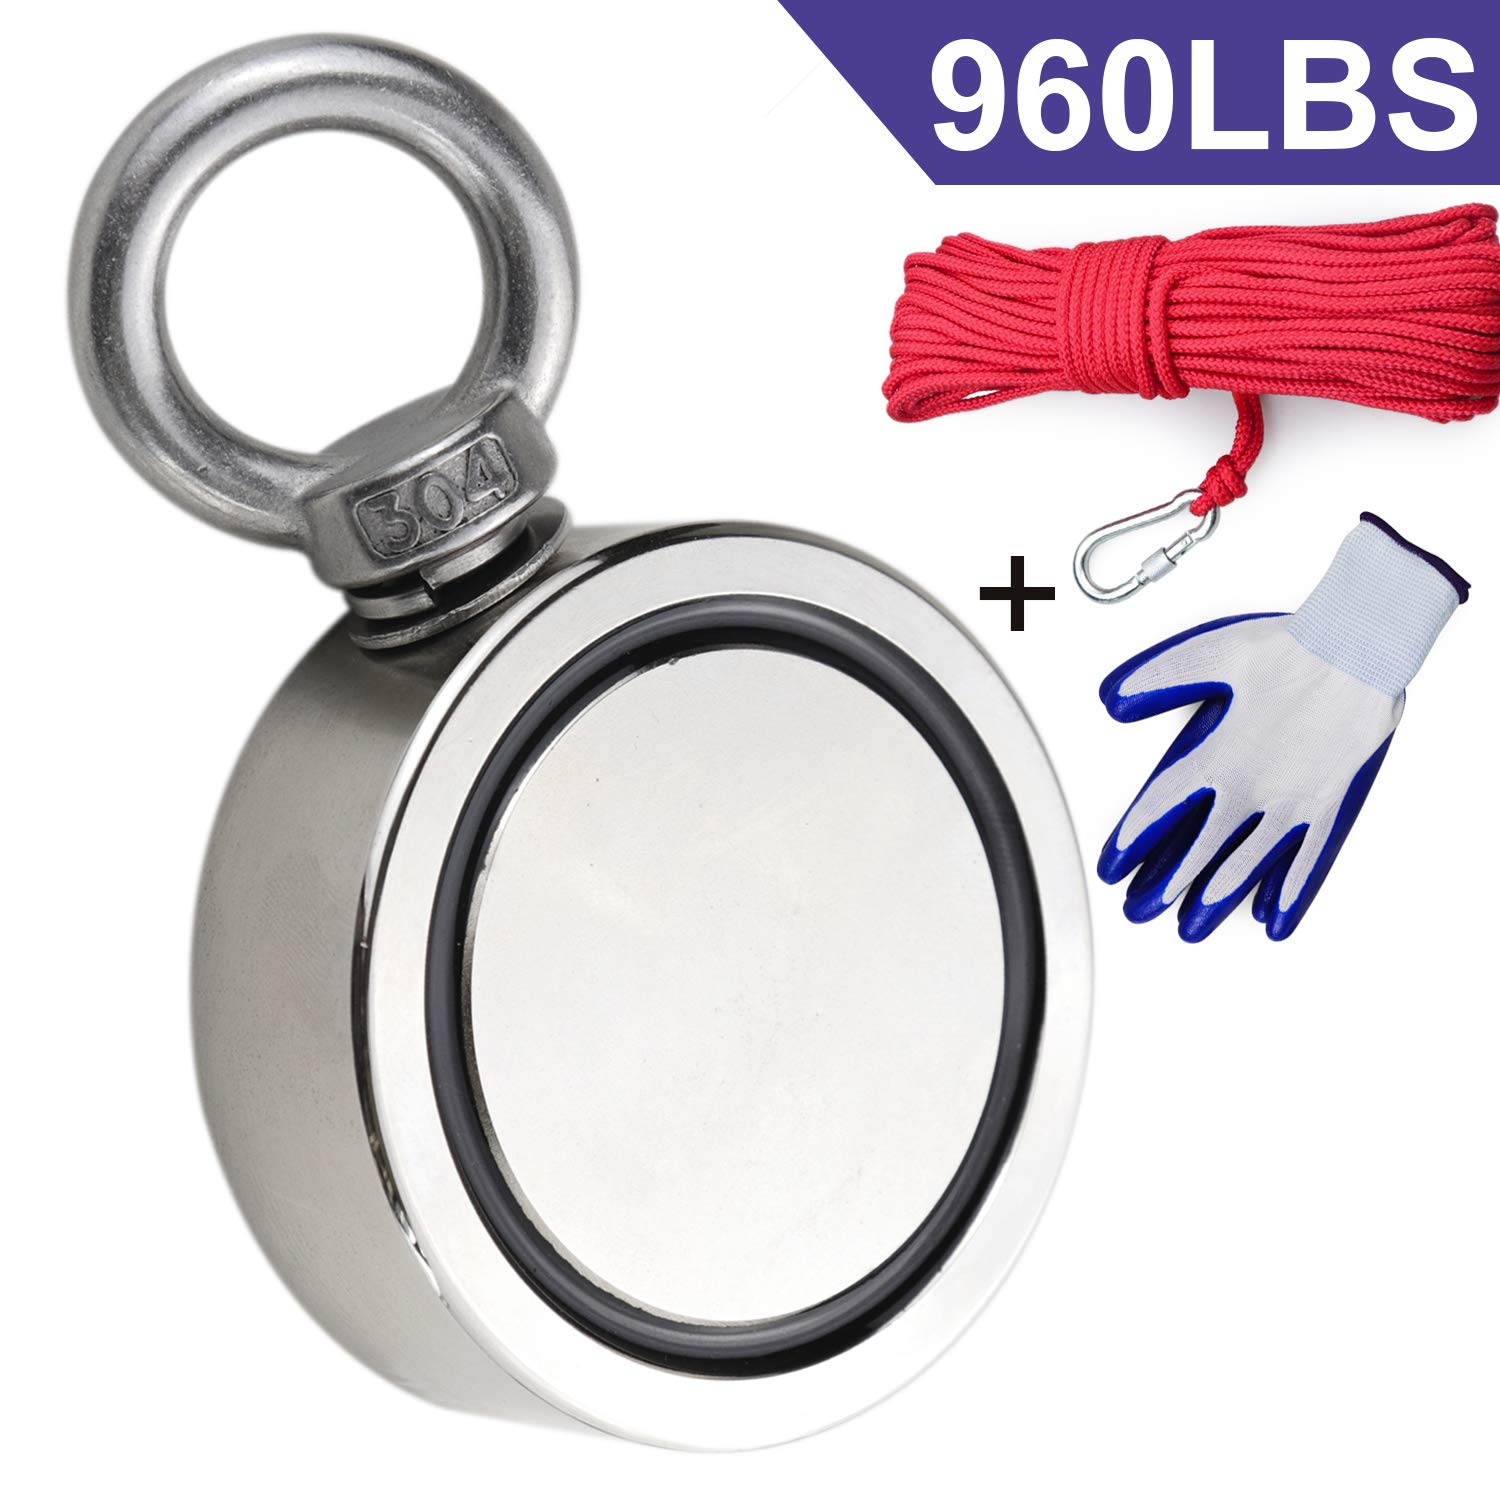 Double Sided Neodymium Fishing Magnet, Combined 960lbs(436KG) Pulling Force, Super Strong Fishing Magnet, Diameter 2.95inch (75mm), Perfect for Retrieving in River and Magnetic Fishing